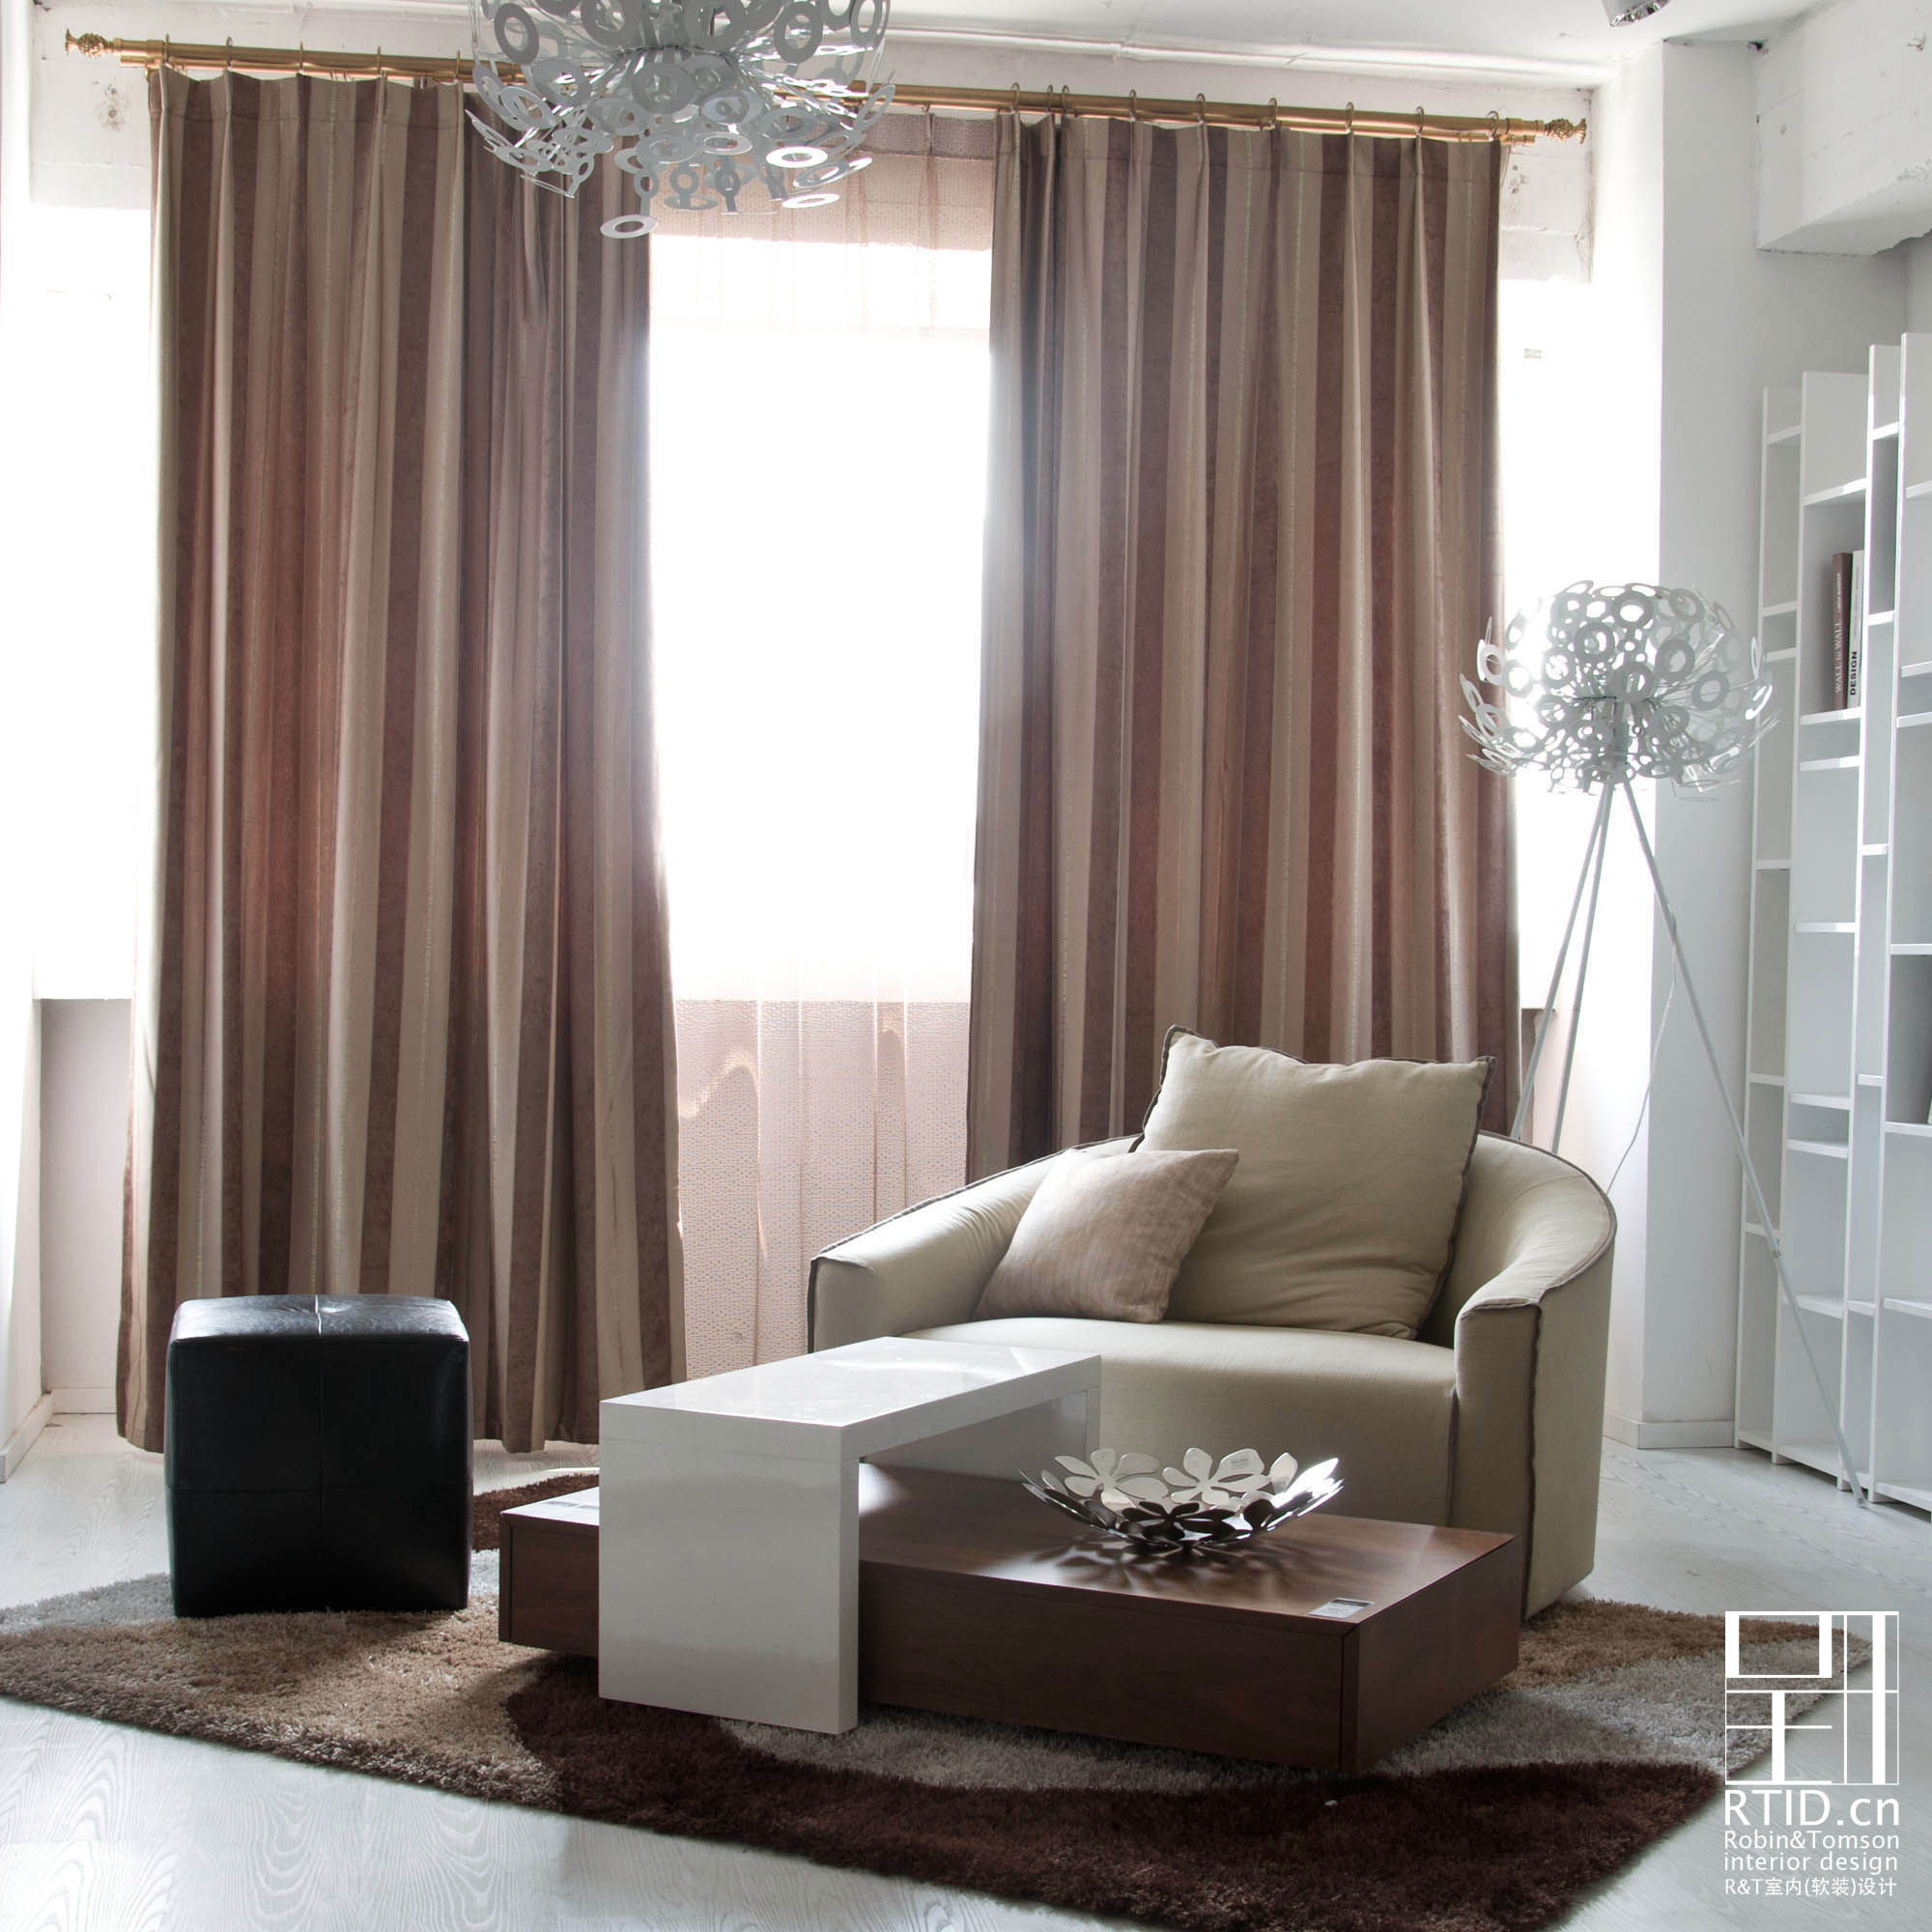 horizontal striped curtains with modern design sofa and carpet feat